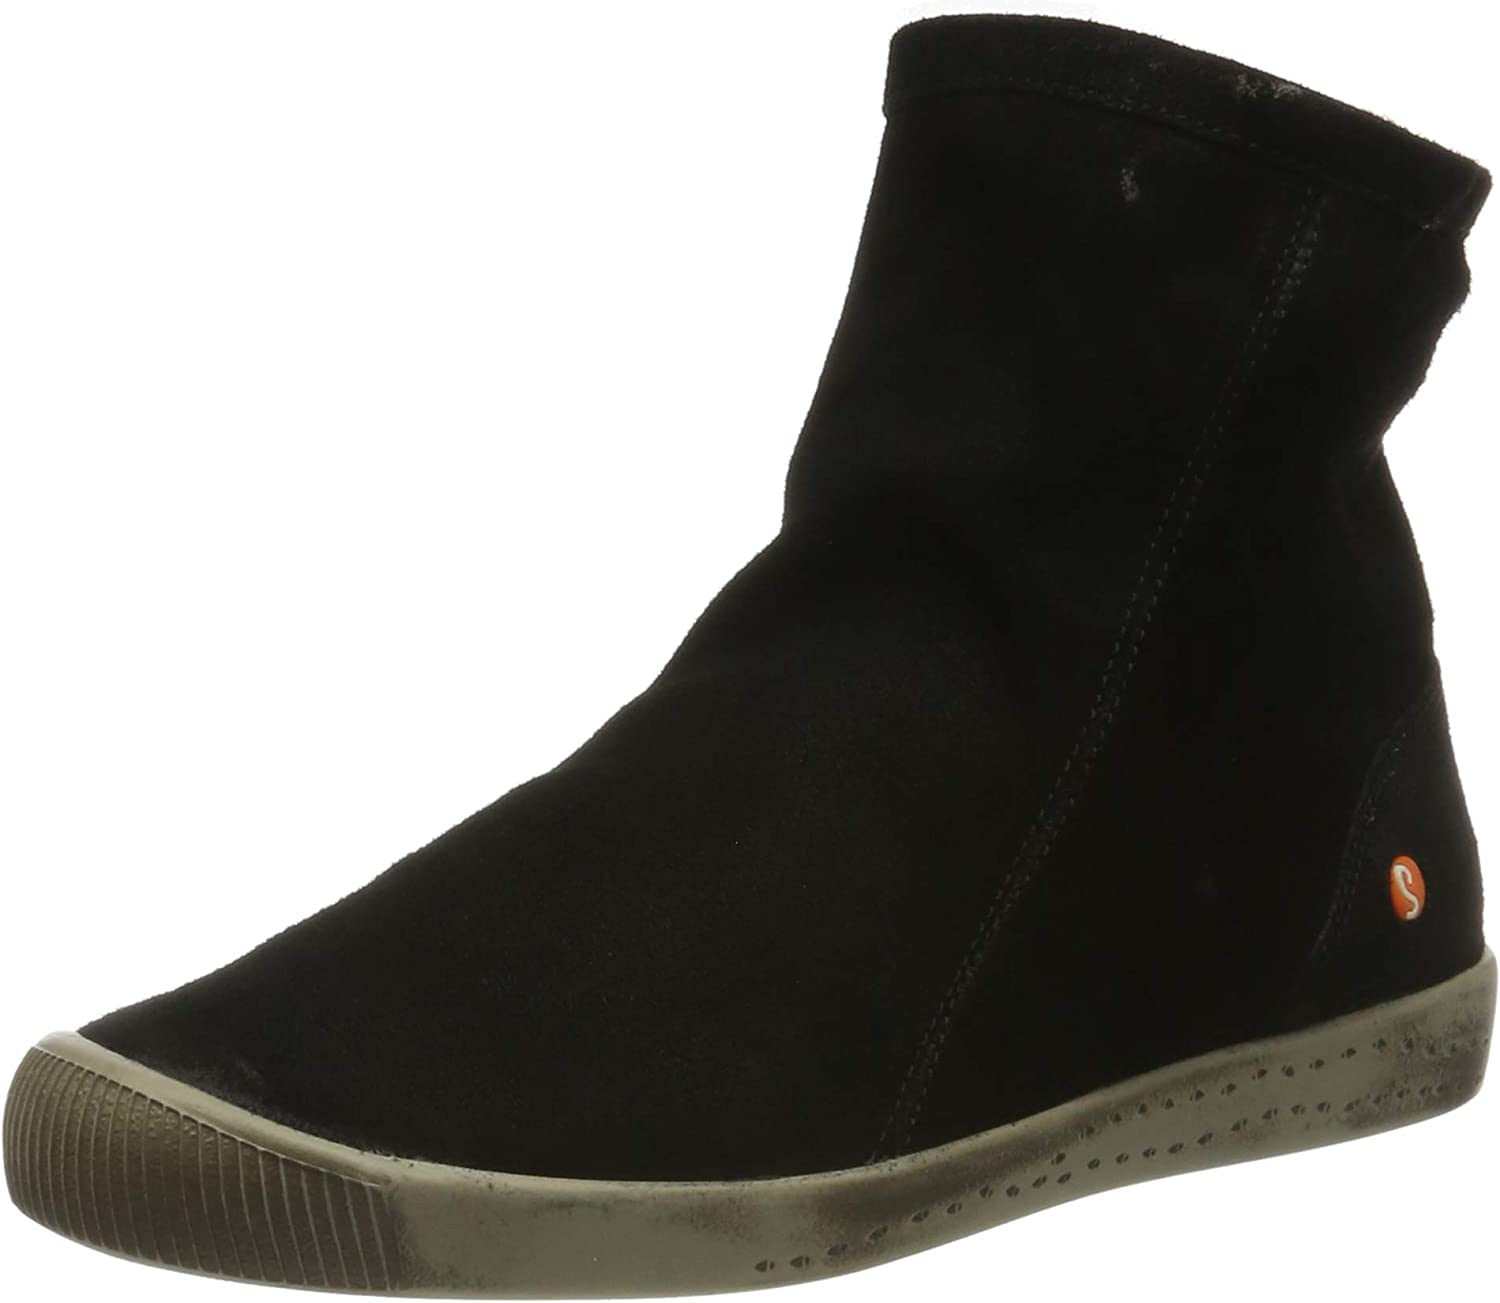 Softinos Women's Max 71% OFF Fees free!! Ankle Boots